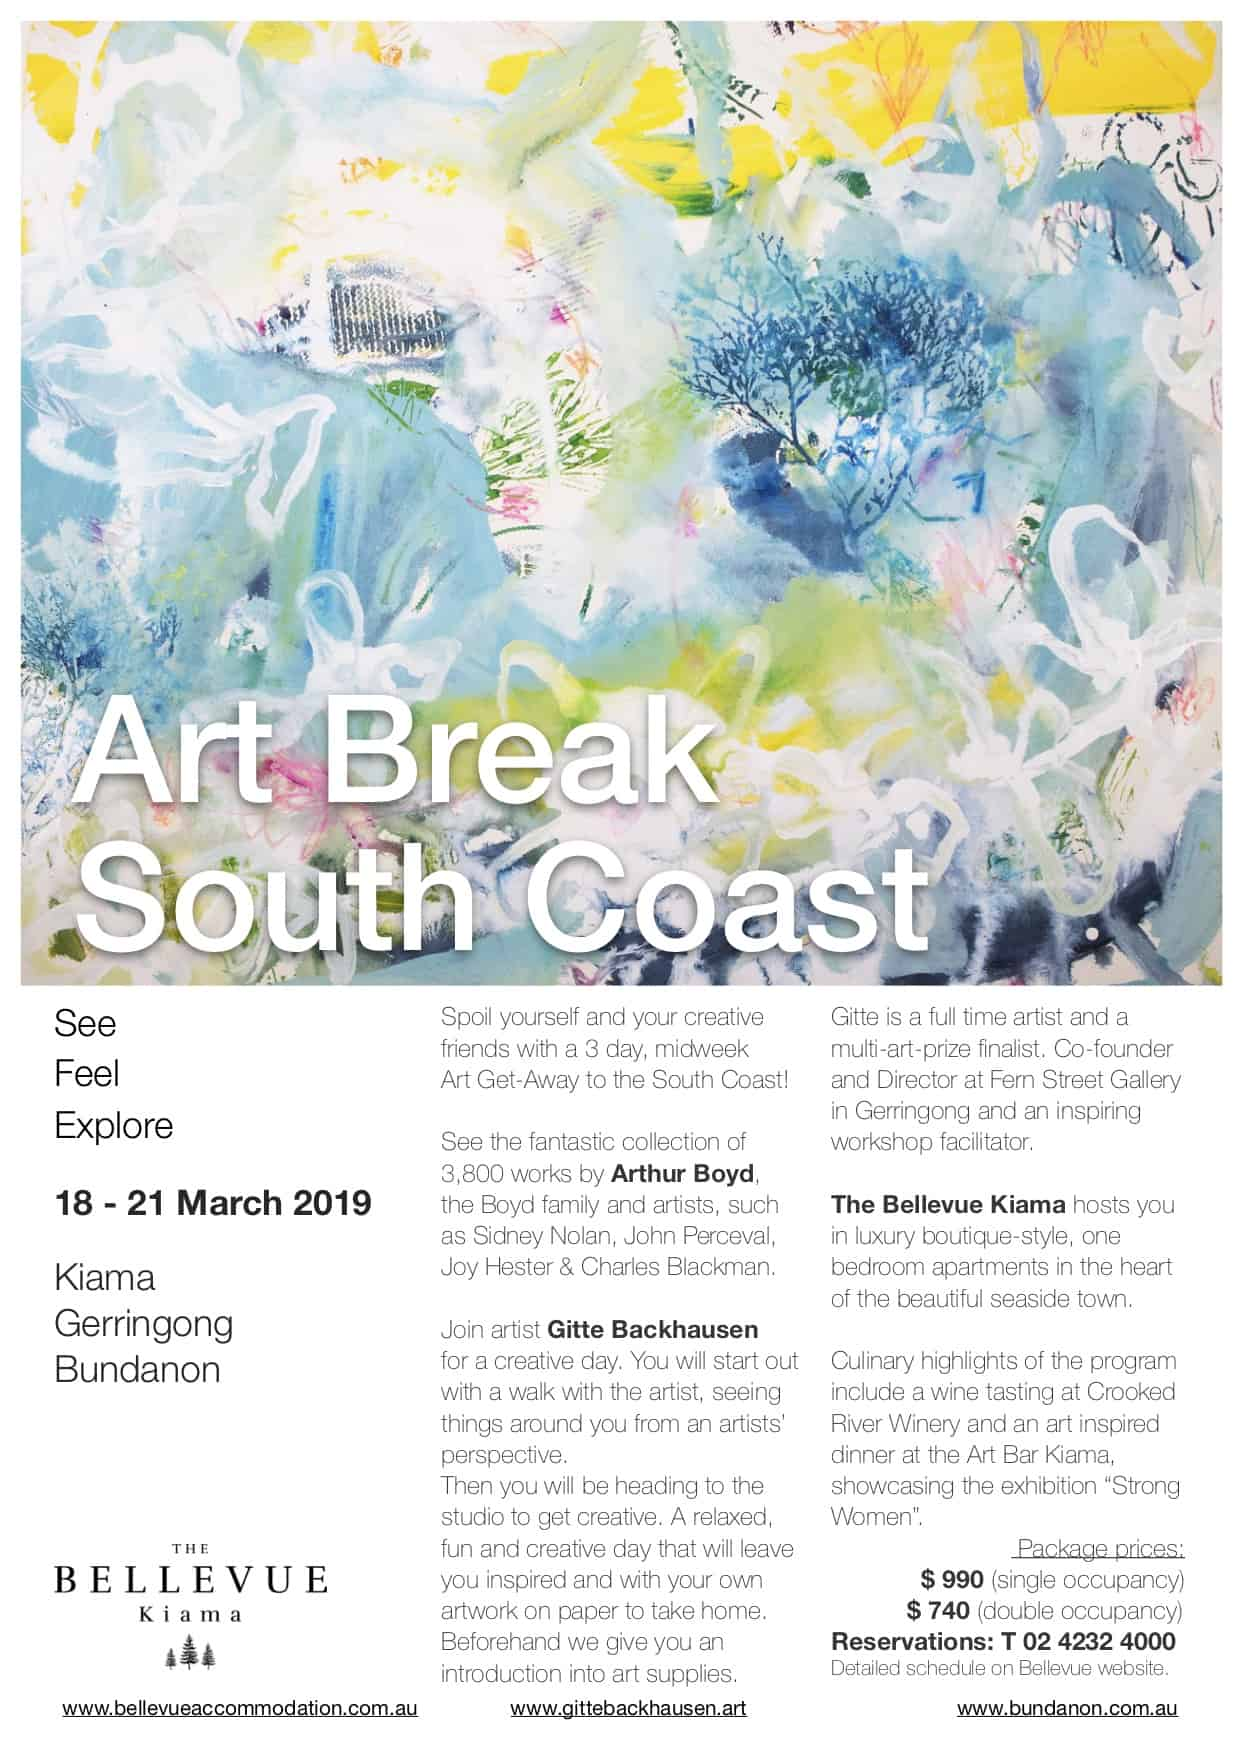 Art Break South Coast, 18 – 21 March 2019